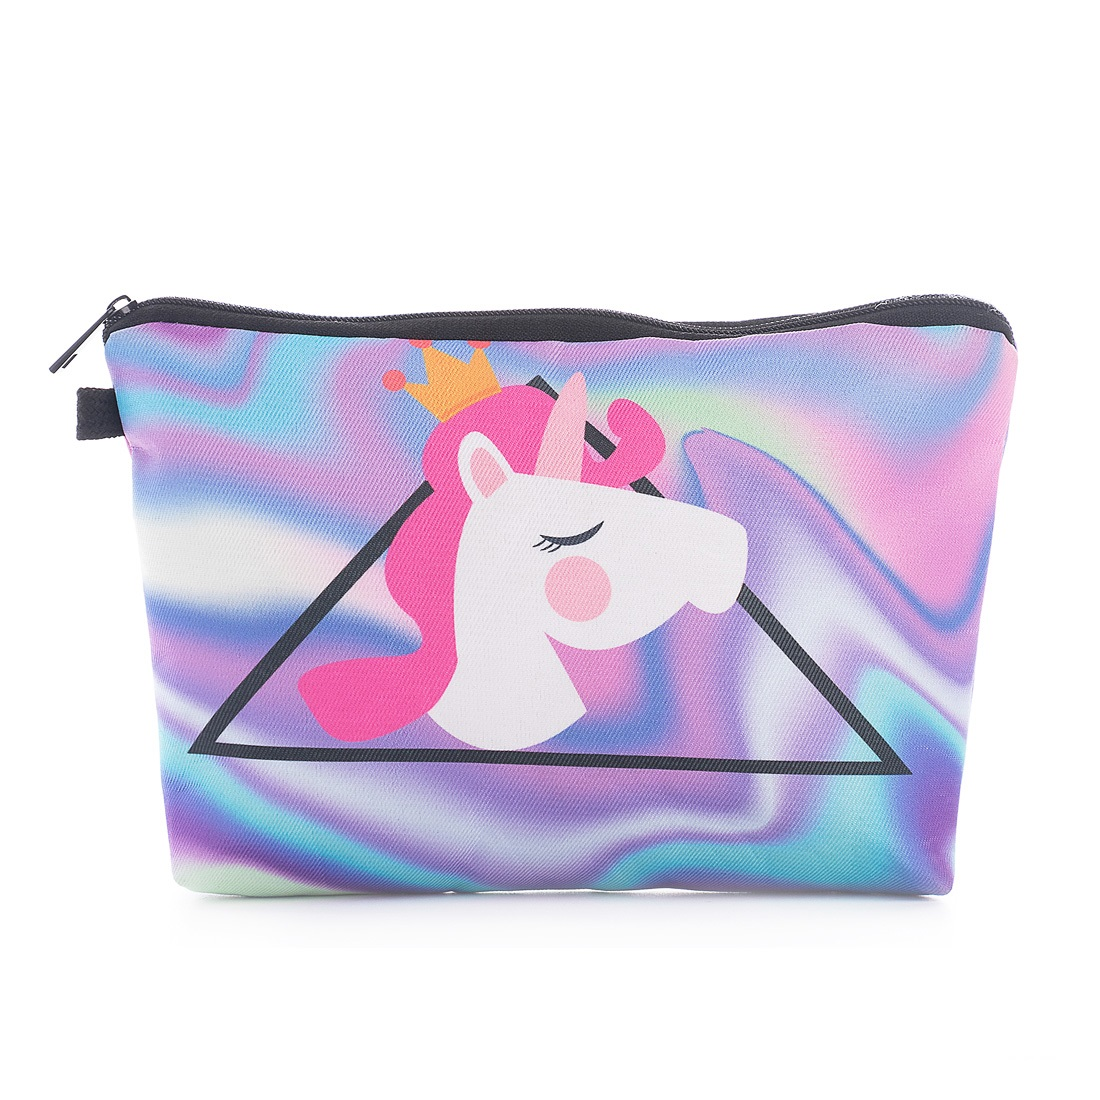 Make Up Pouch Women Makeup Bag New Case Beauty Cosmetic Bag Travel Miyahouse Storage For Women Makeup Bag Small Cosmetic Bag